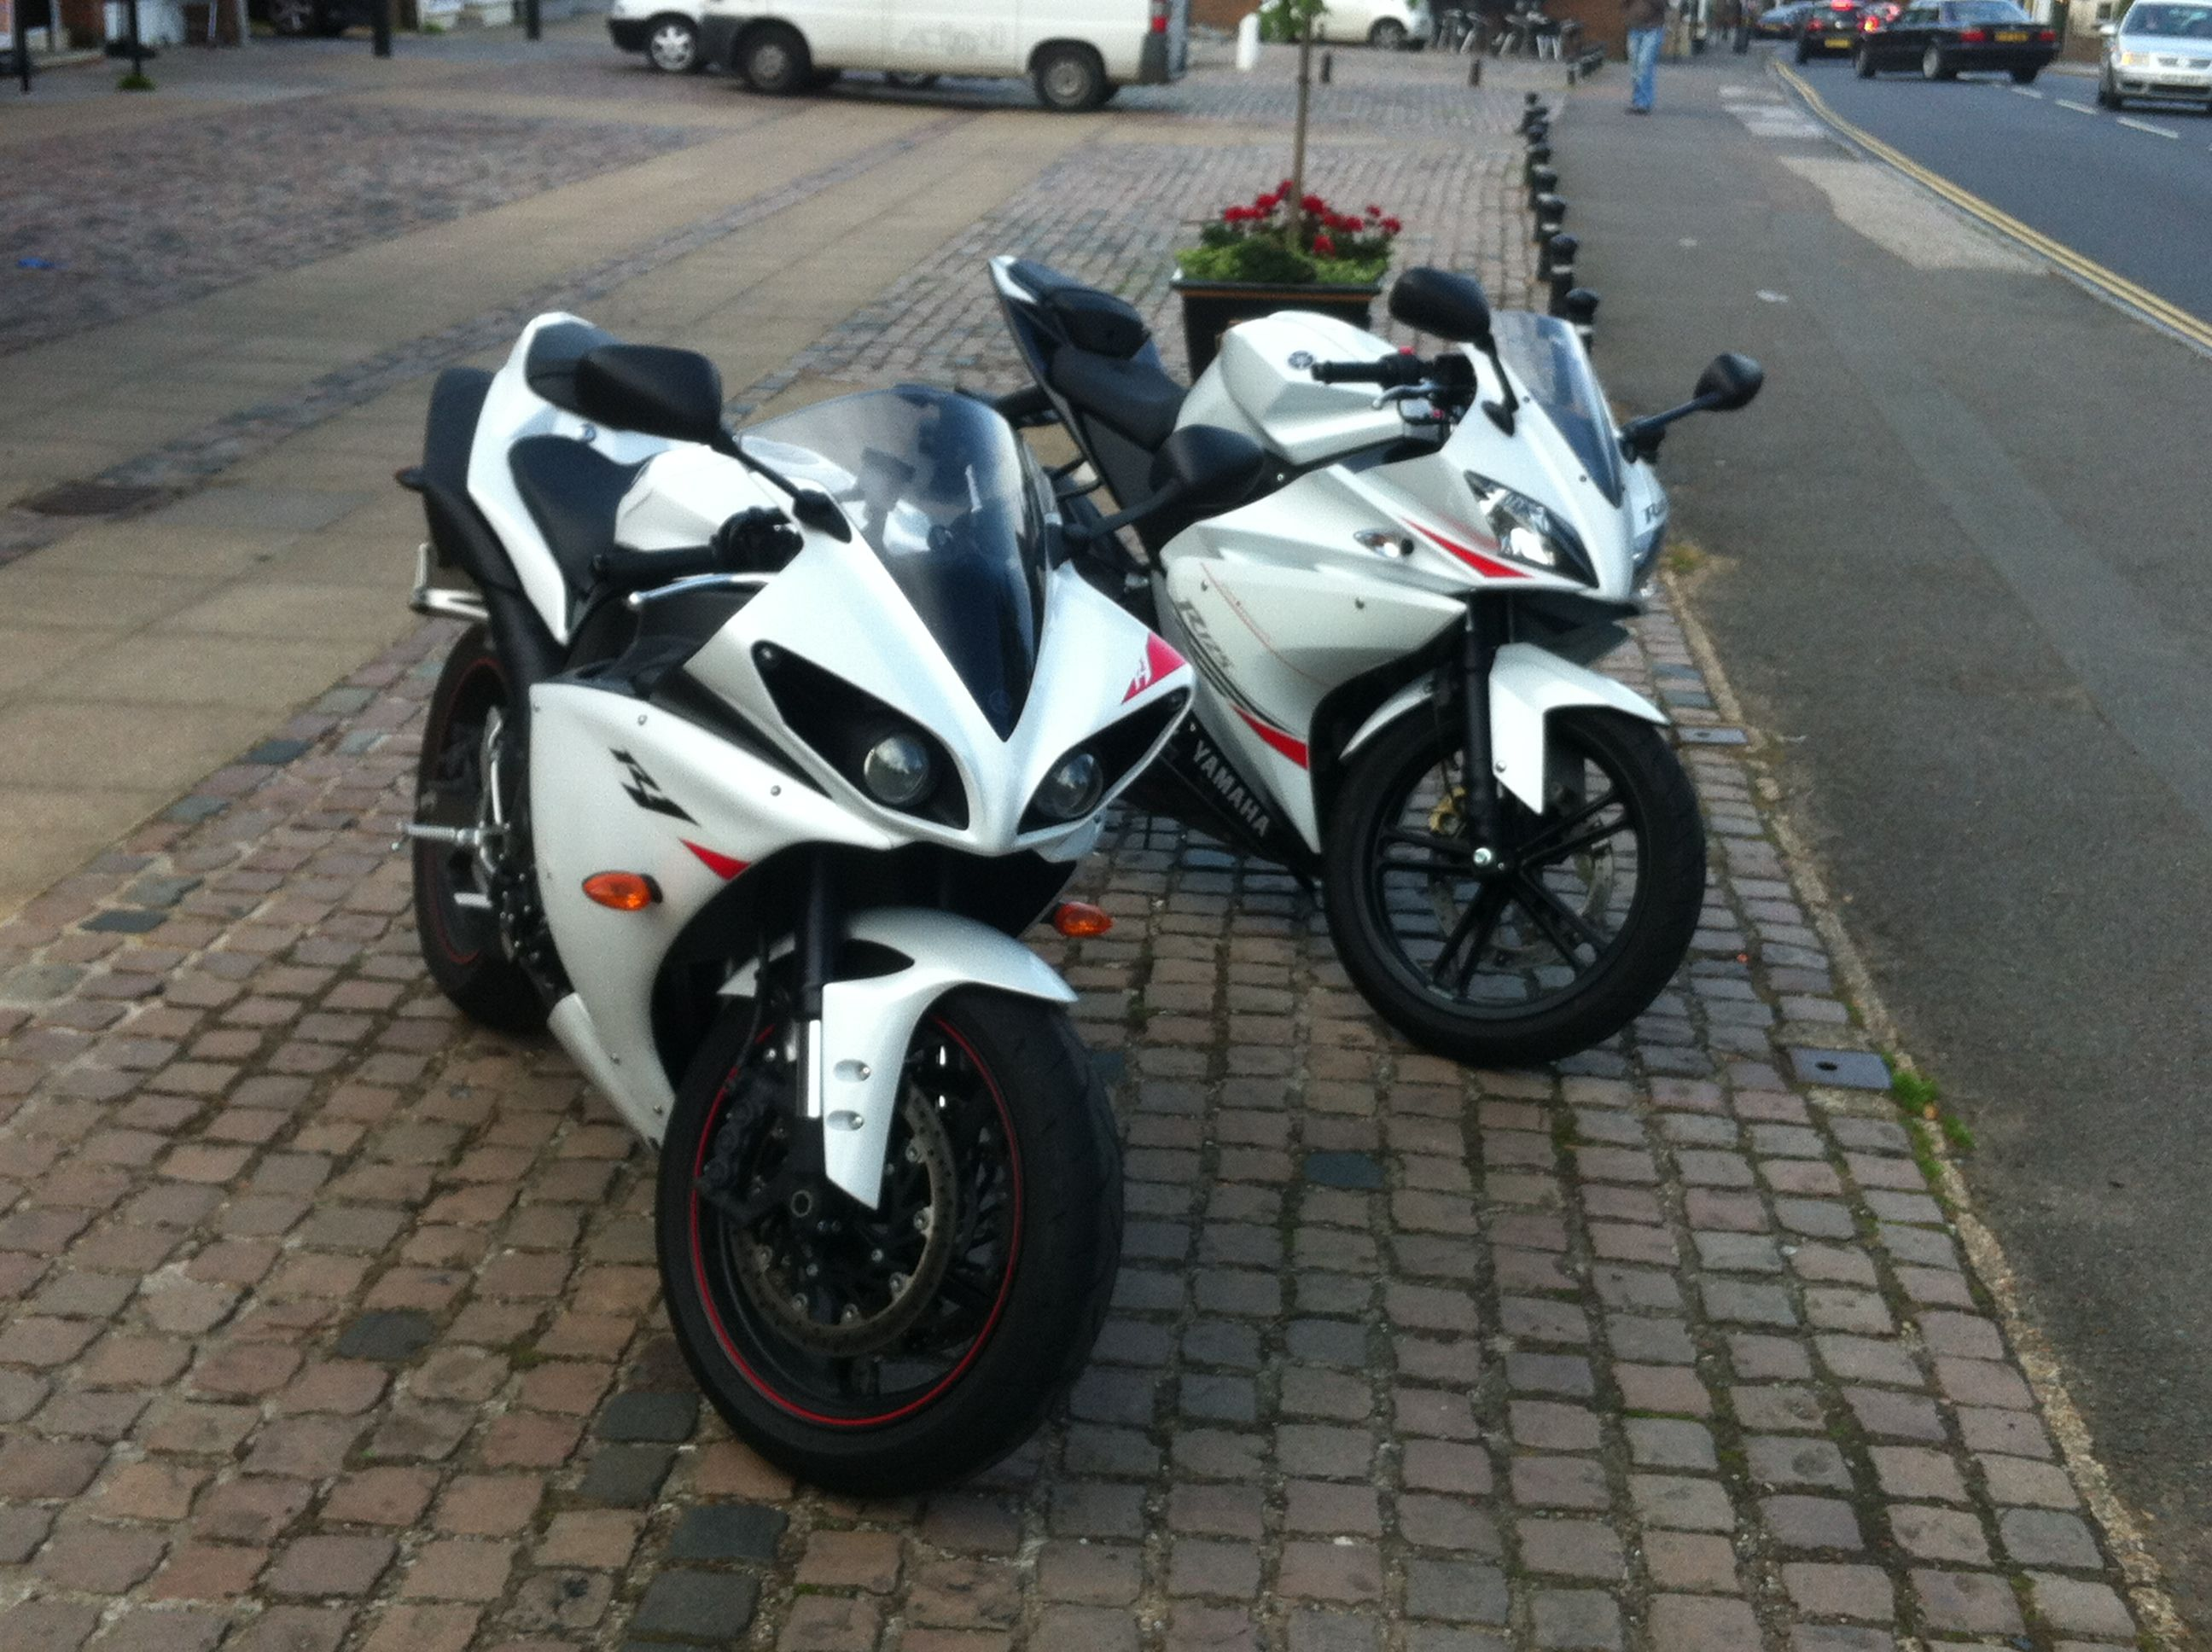 2012 yamaha yzf r6 reviews prices and specs review ebooks - The Meets Its Bigger Brute Of A Brother The Martyn Came Into Work On The Latest Yamaha This Week And Parked Up Next To Gavin S Here Are